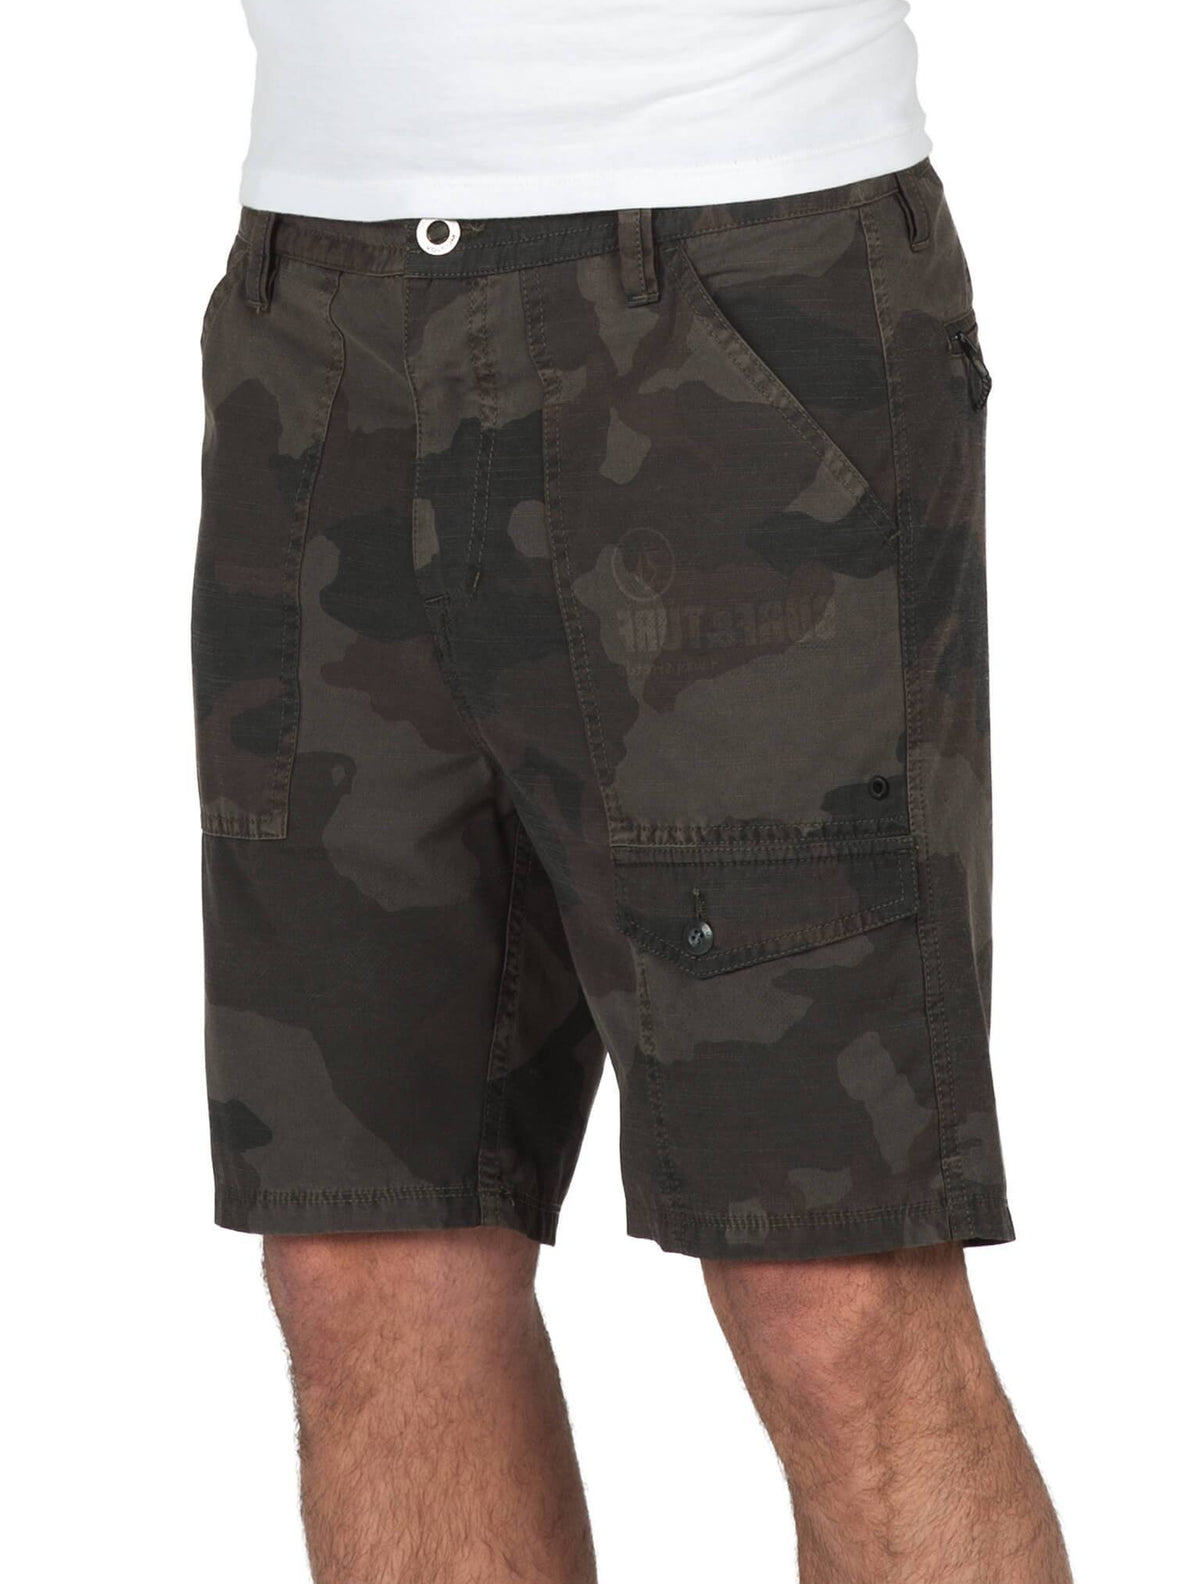 Short Surf N' Turf Creeper 19 - Camouflage